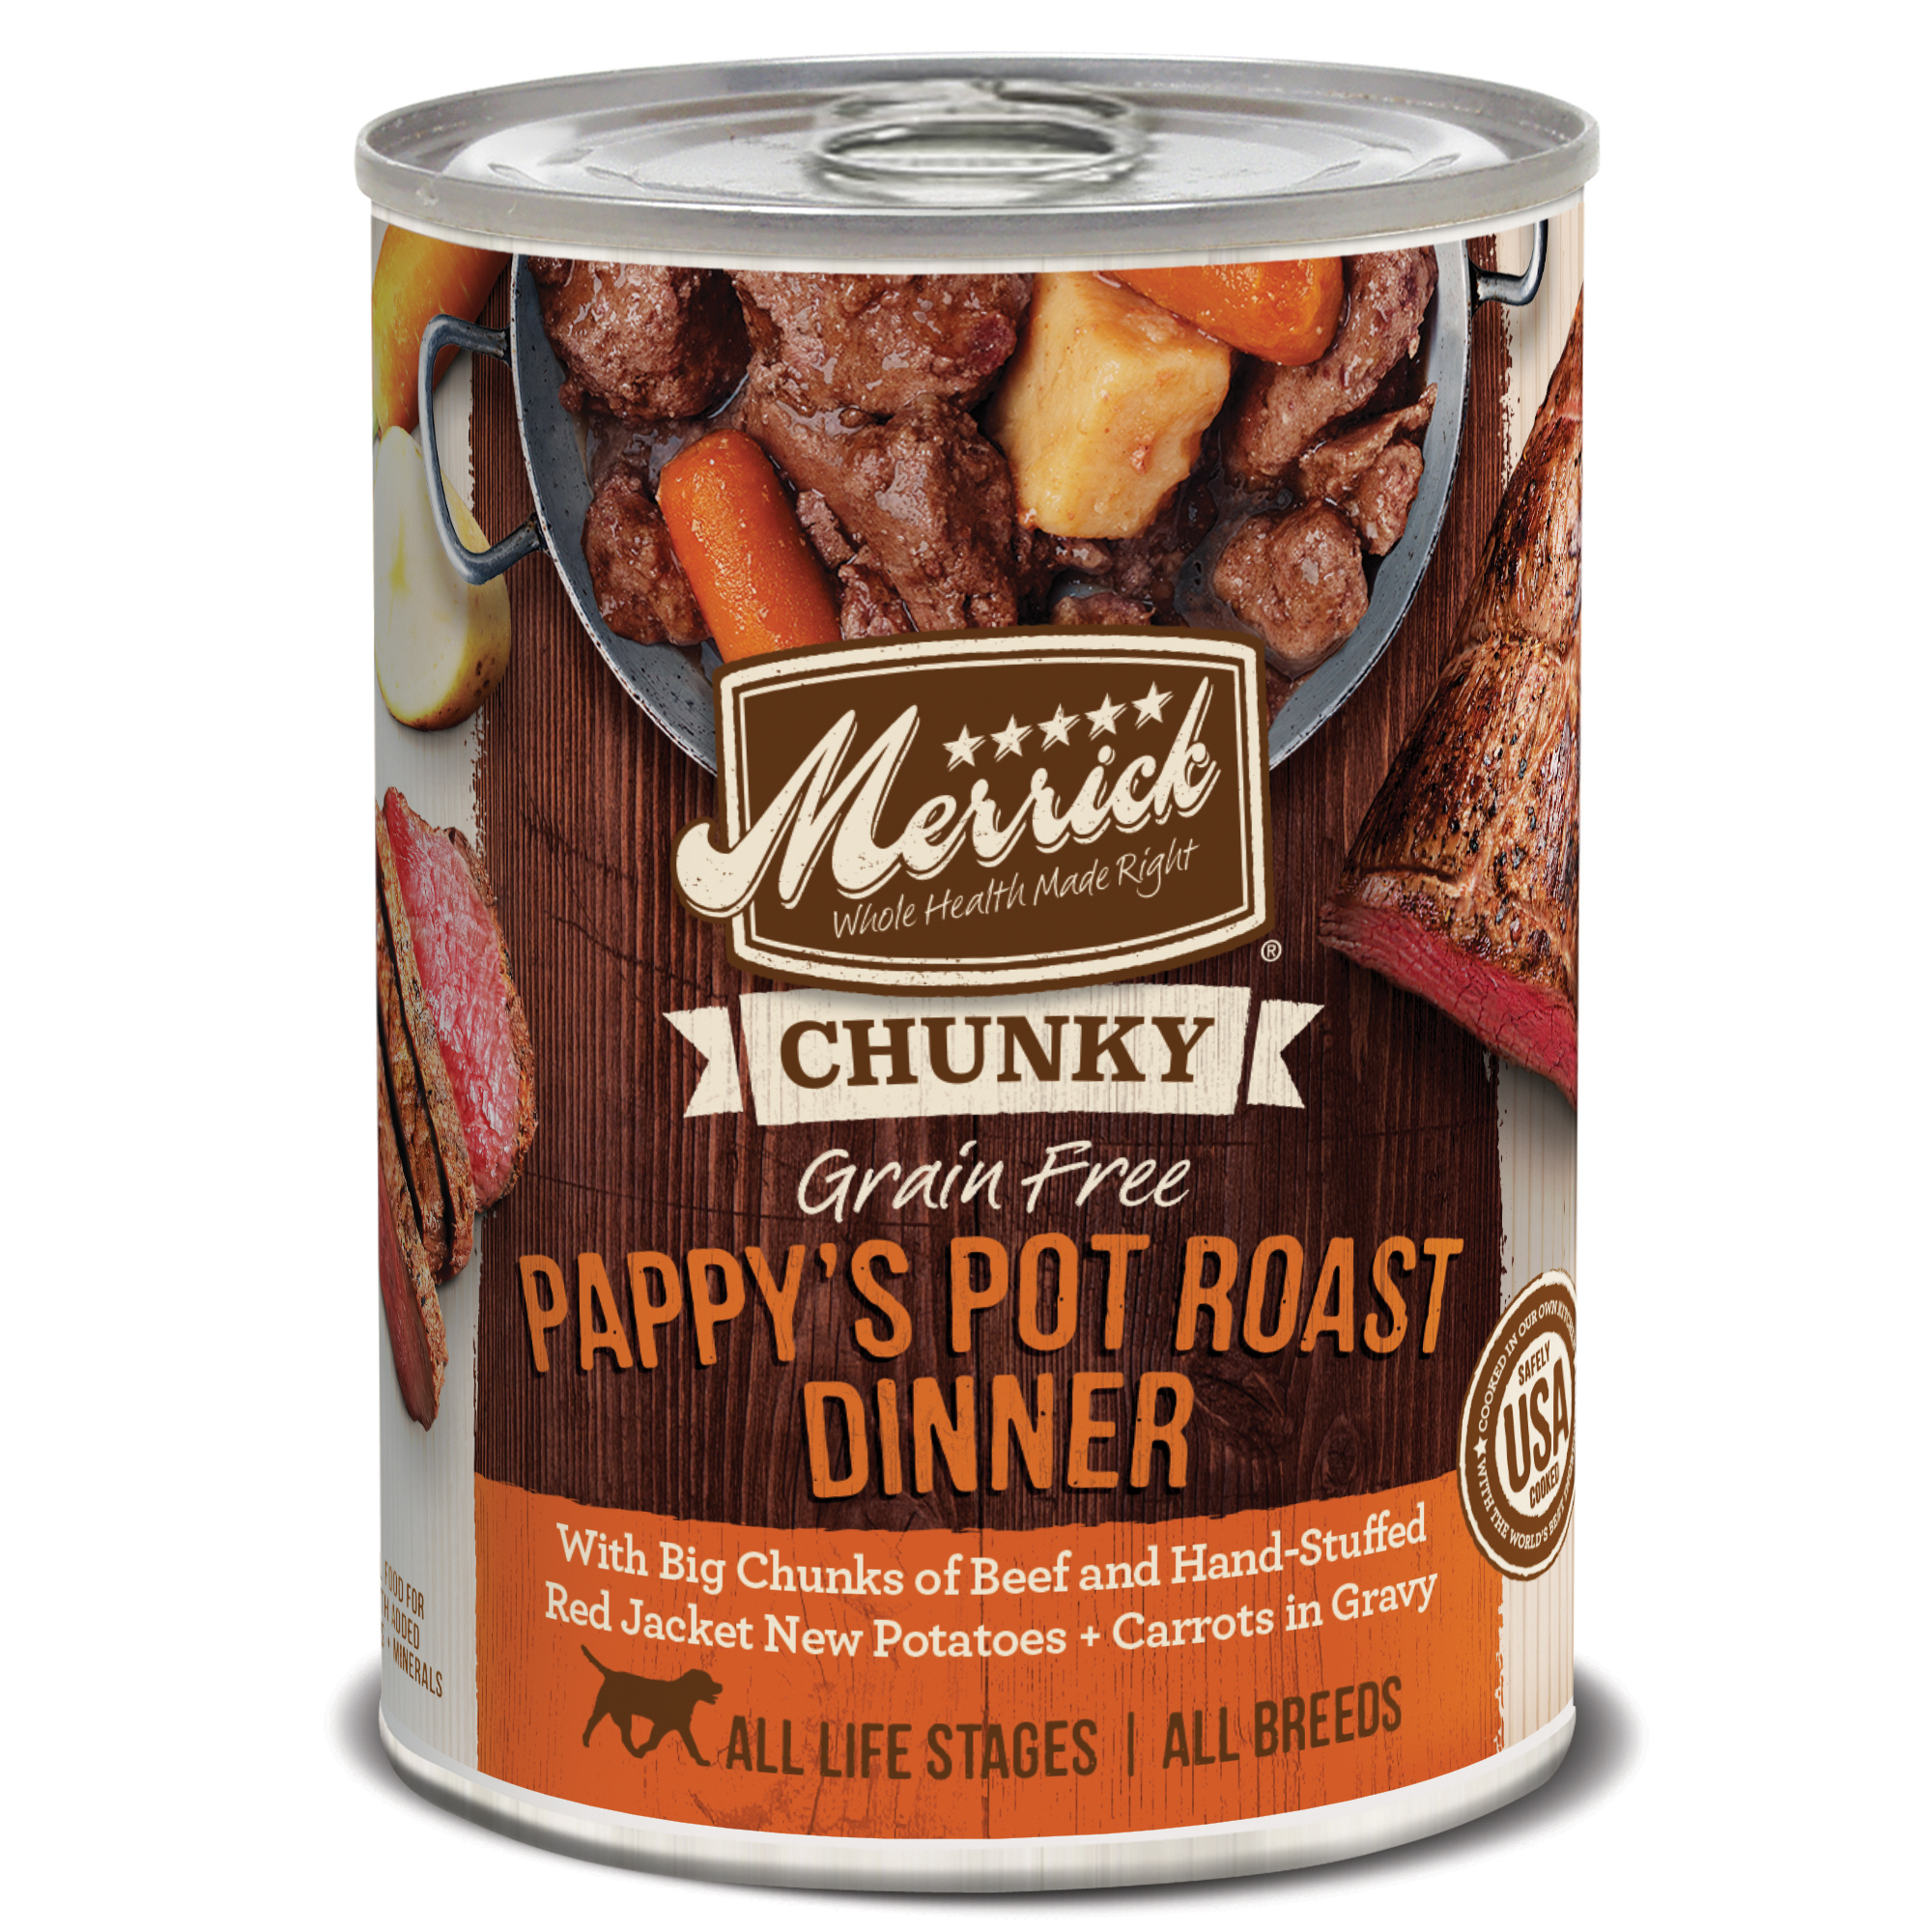 Merrick Chunky Grain-Free Pappy's Pot Roast Dinner Canned Dog Food Image